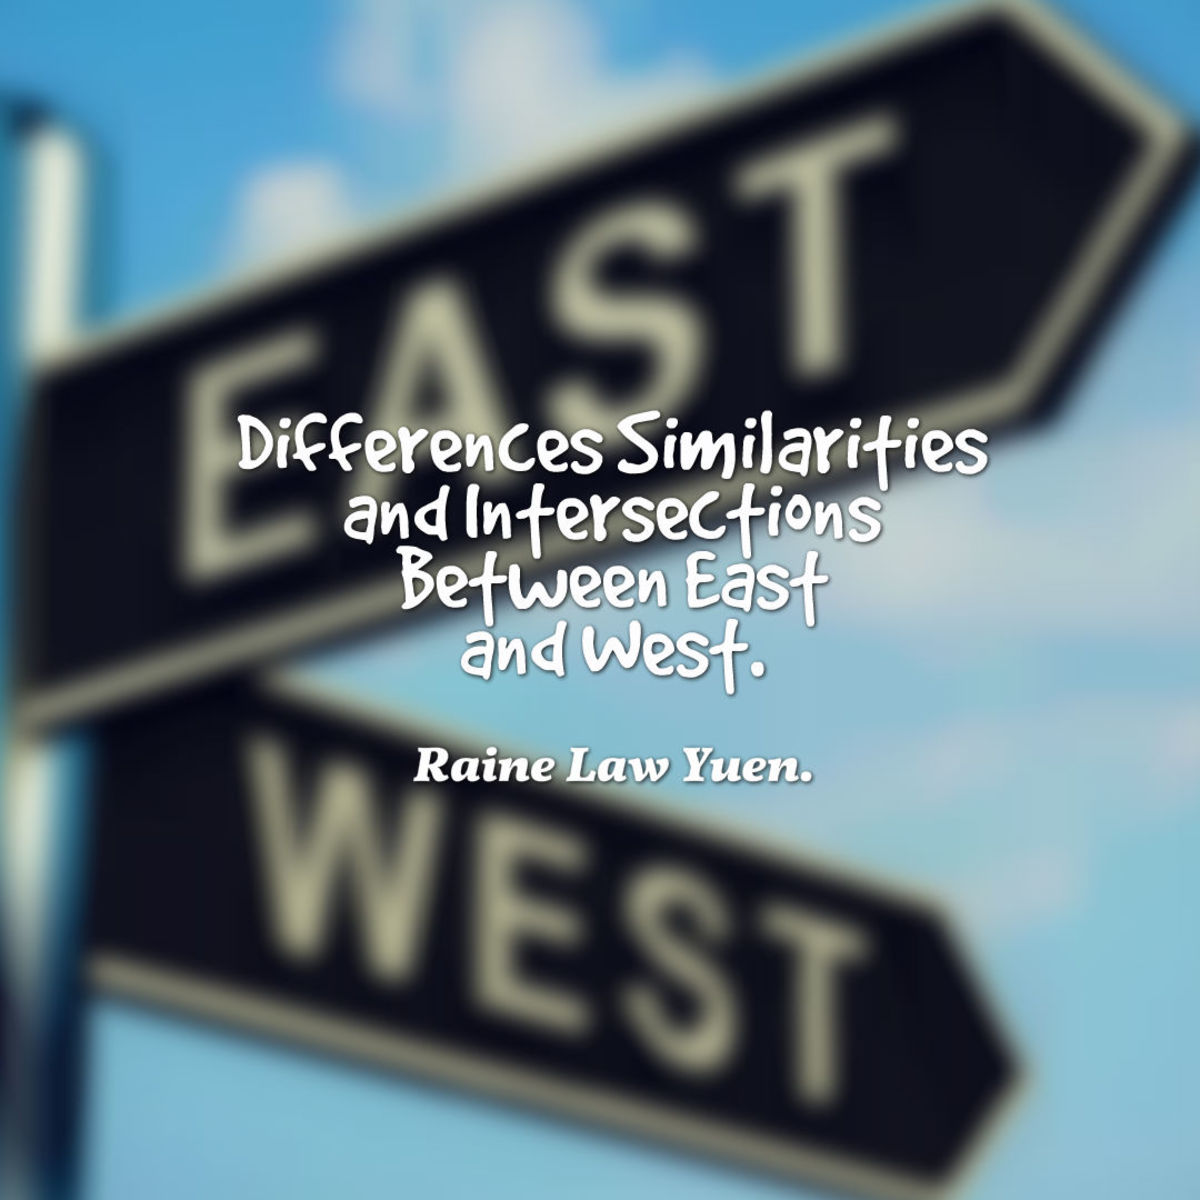 Differences, Similarities & Intersections Between East and West.